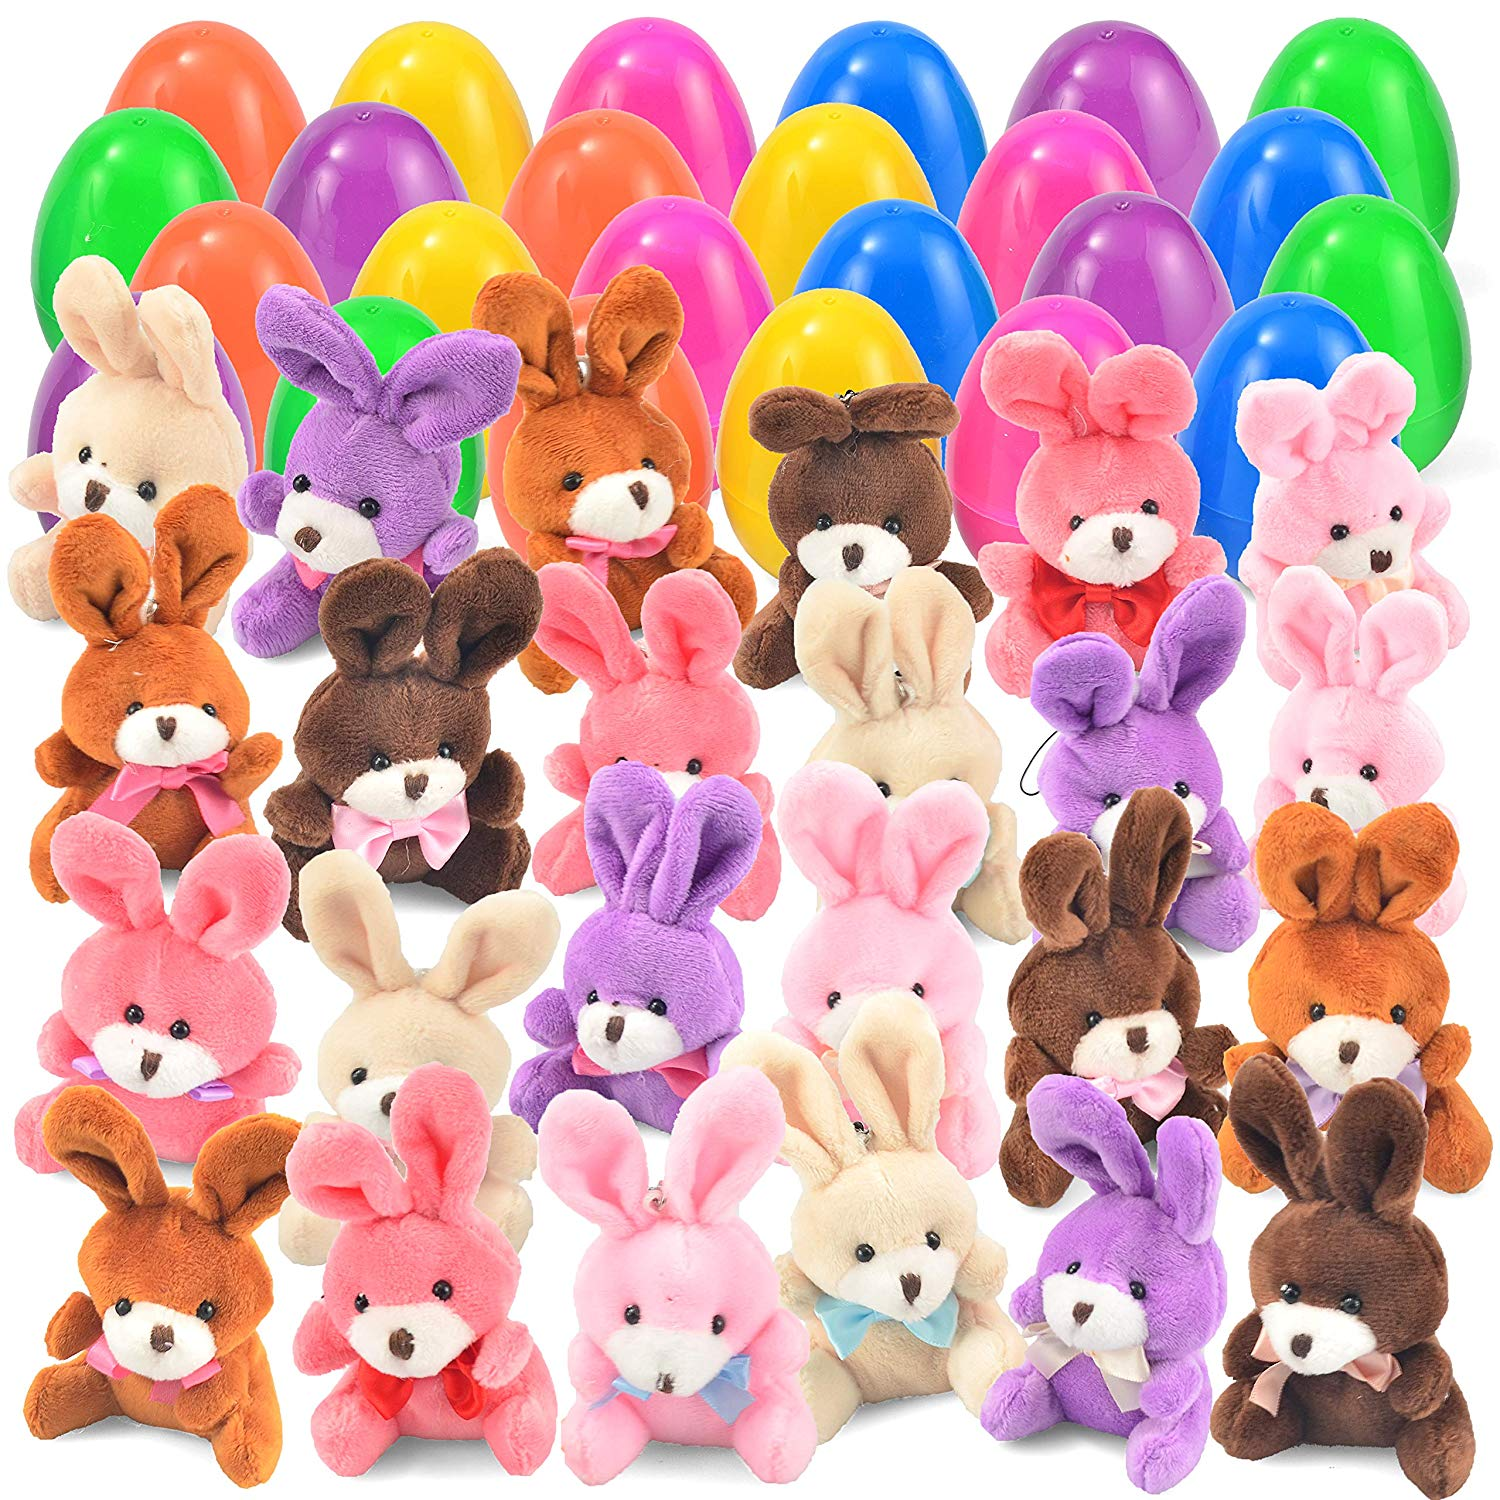 24 PCs Filled Easter Eggs with Plush Bunny